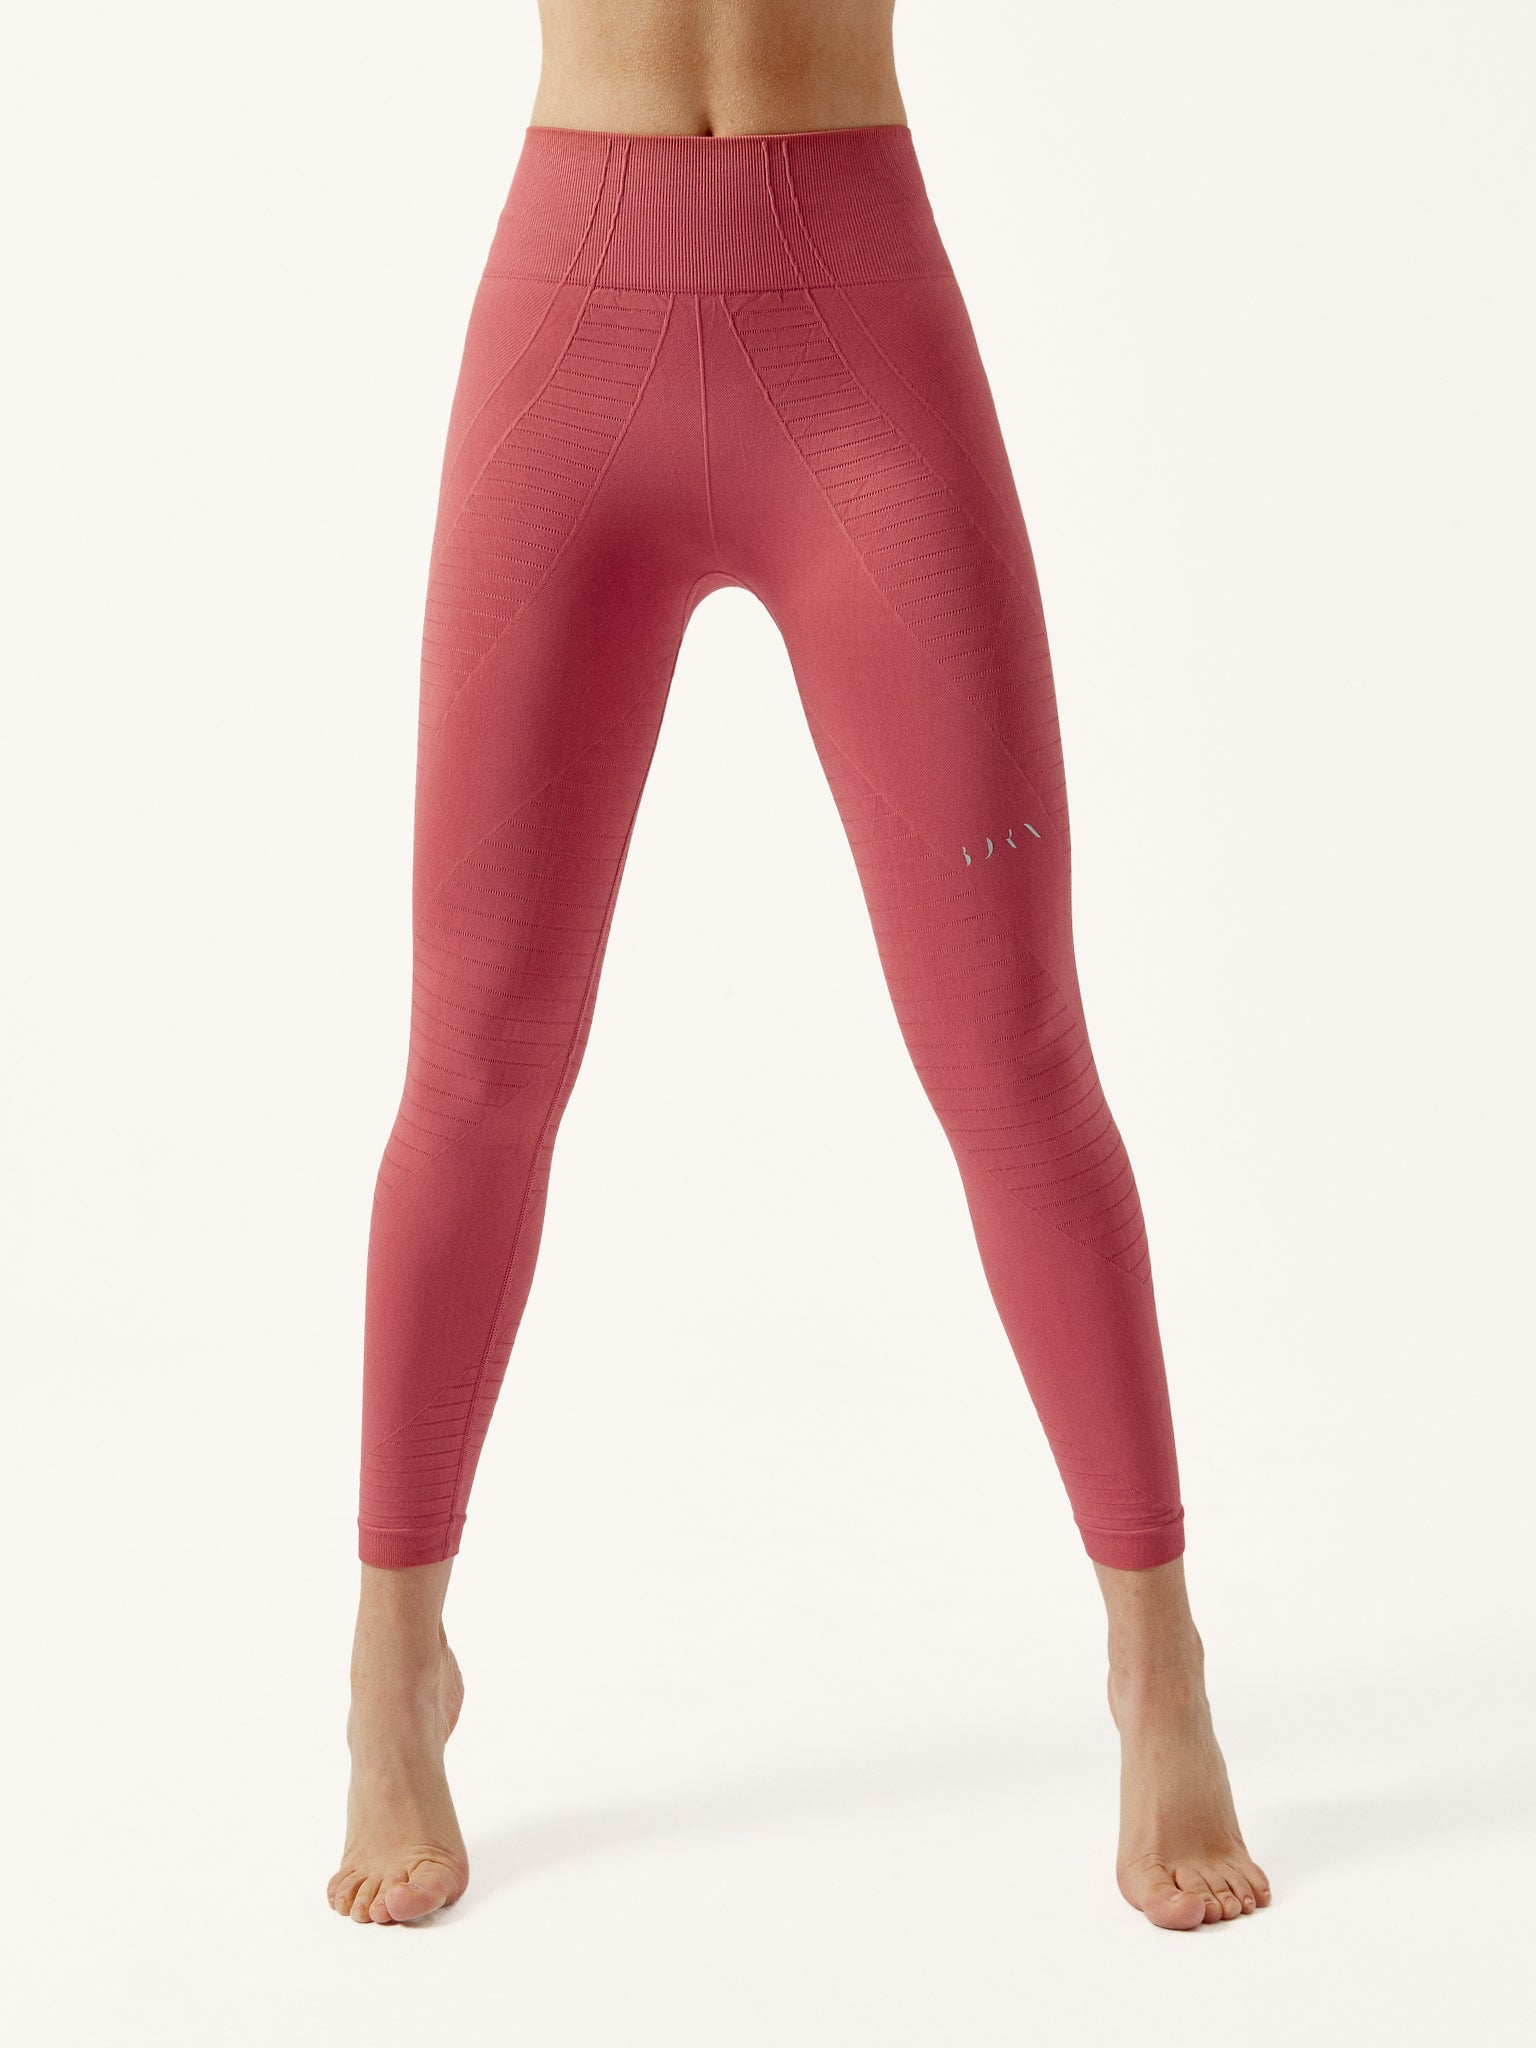 Legging Ganda Terracota